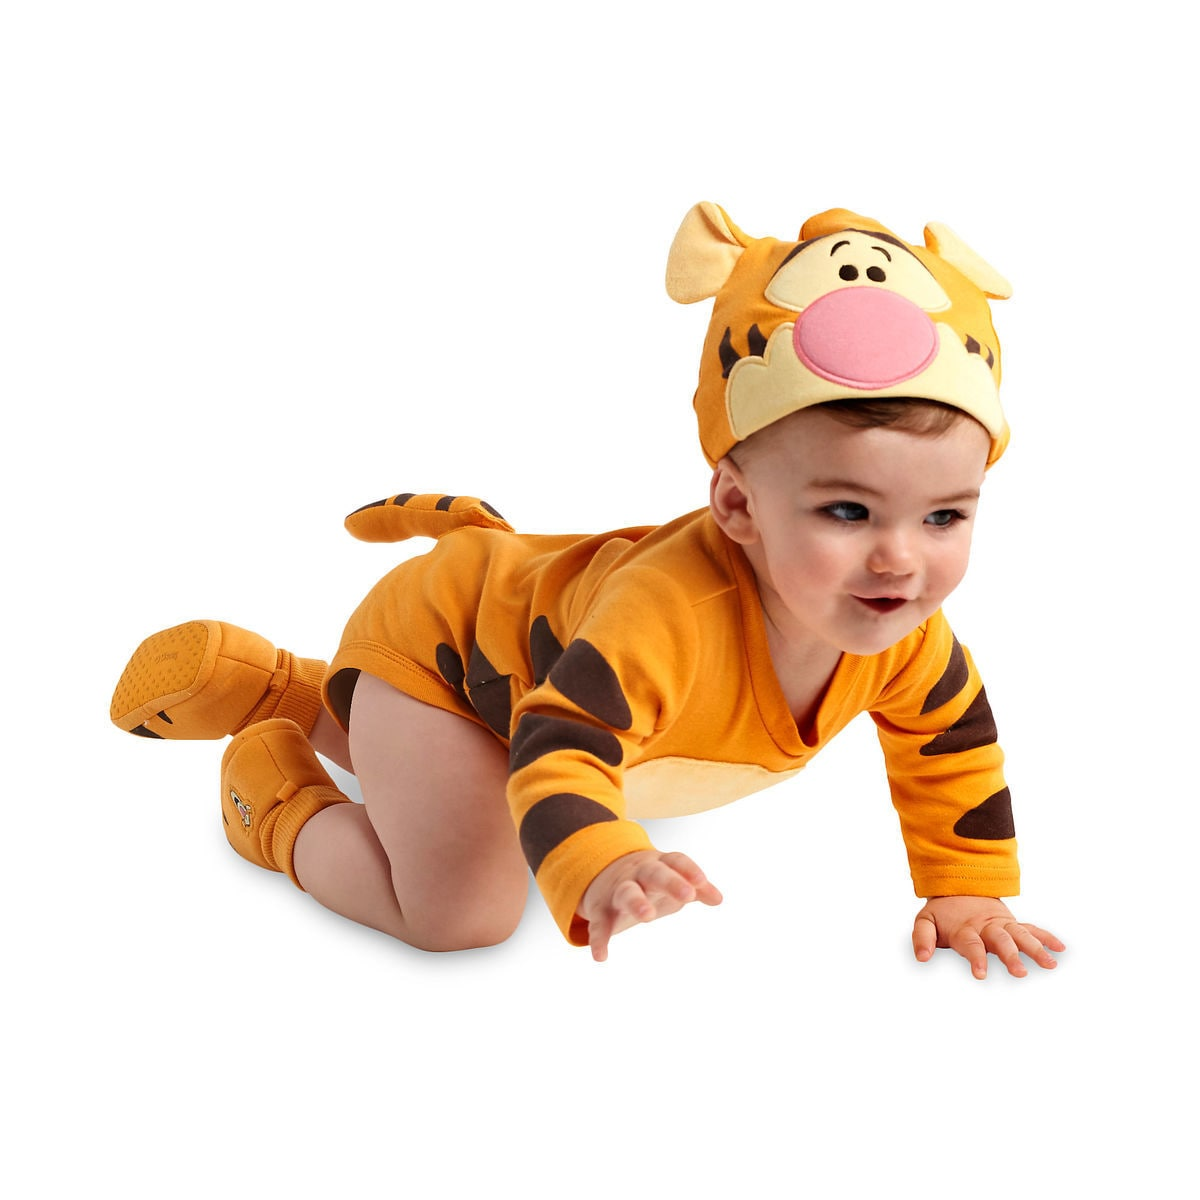 fc06da1dd09 Product Image of Tigger Disney Cuddly Bodysuit Costume for Baby -  Personalizable   2